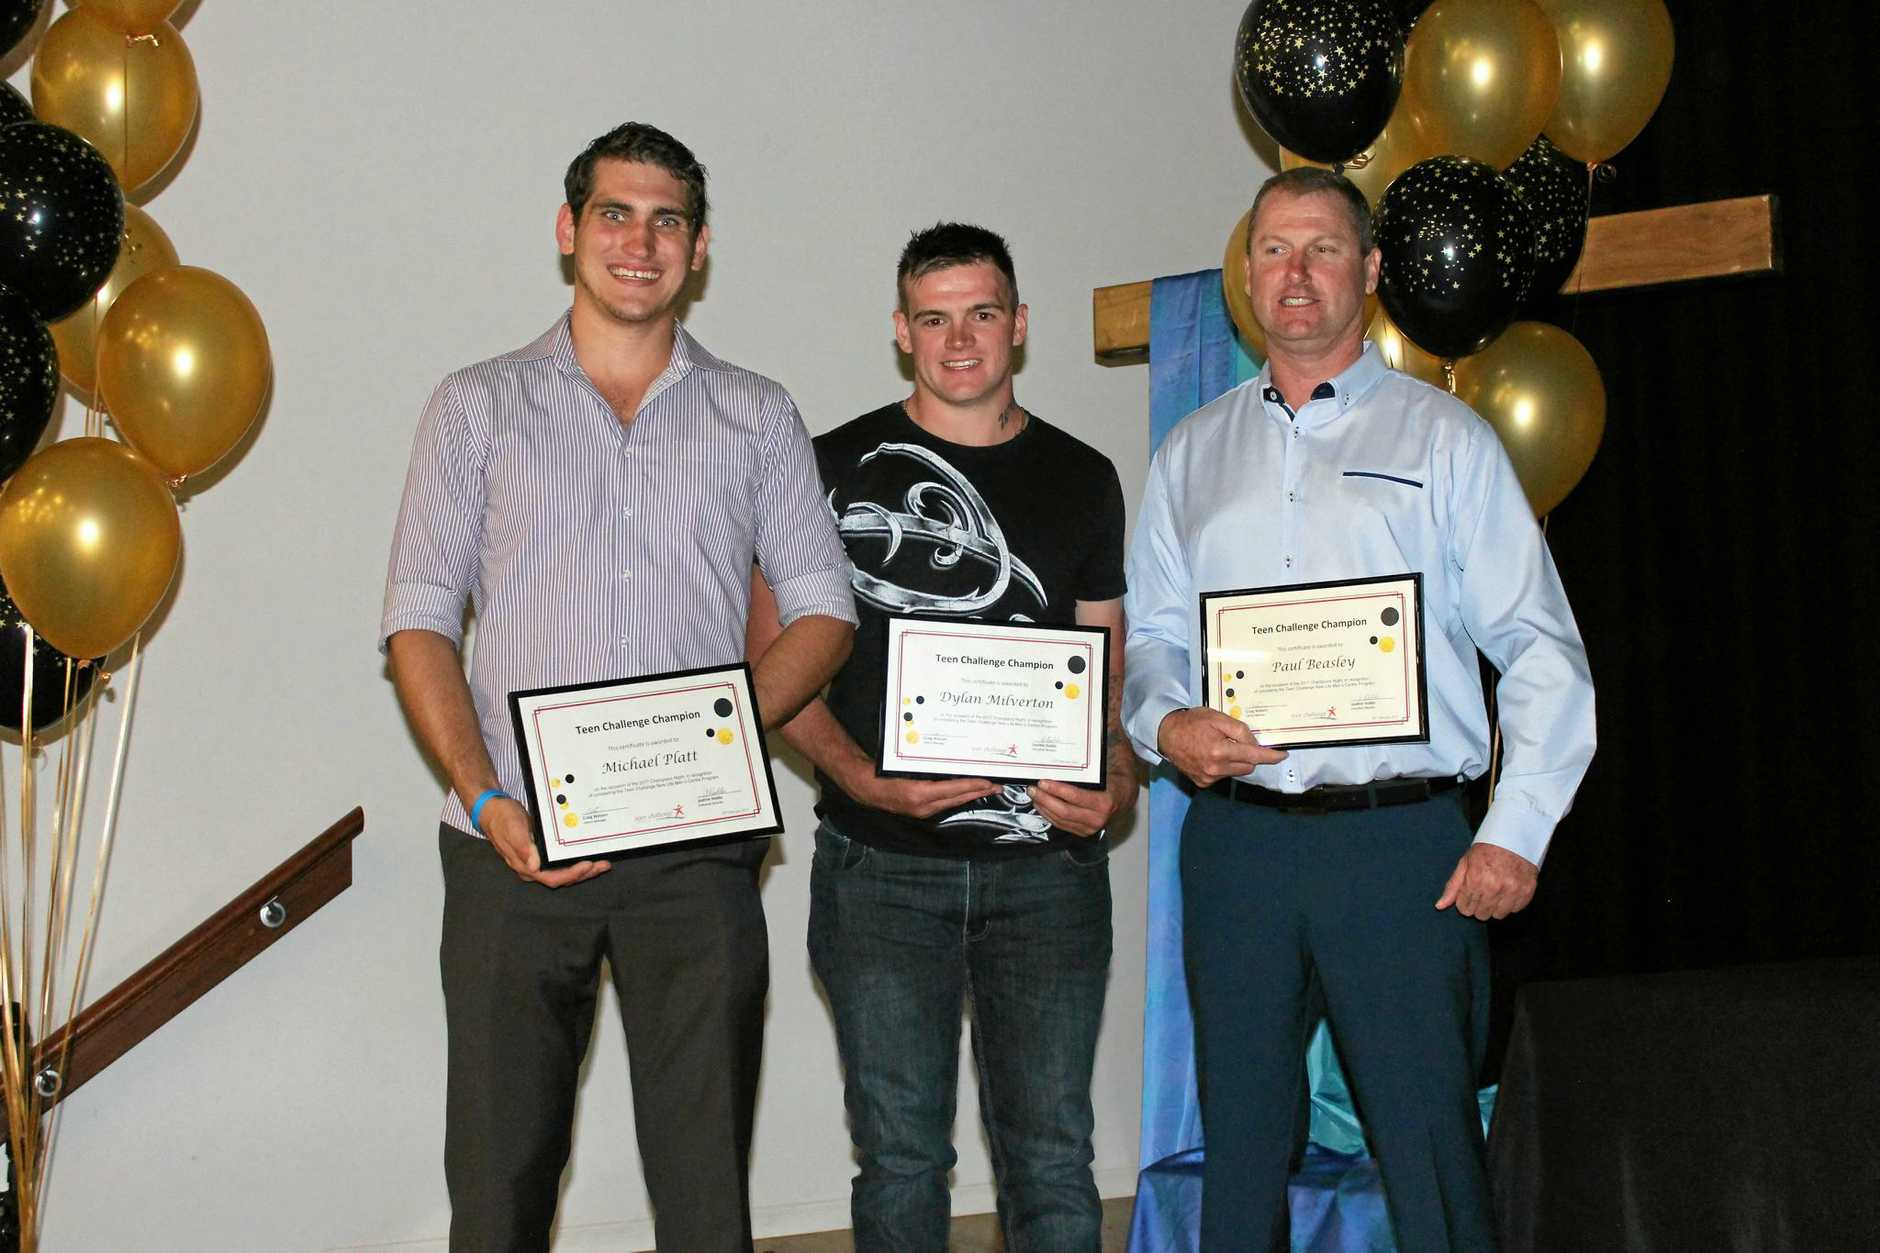 DRUG FREE: Graduating from the Teen Challenge program are (from left) Michael Platt, Dylan Milverton and Paul Beasley.